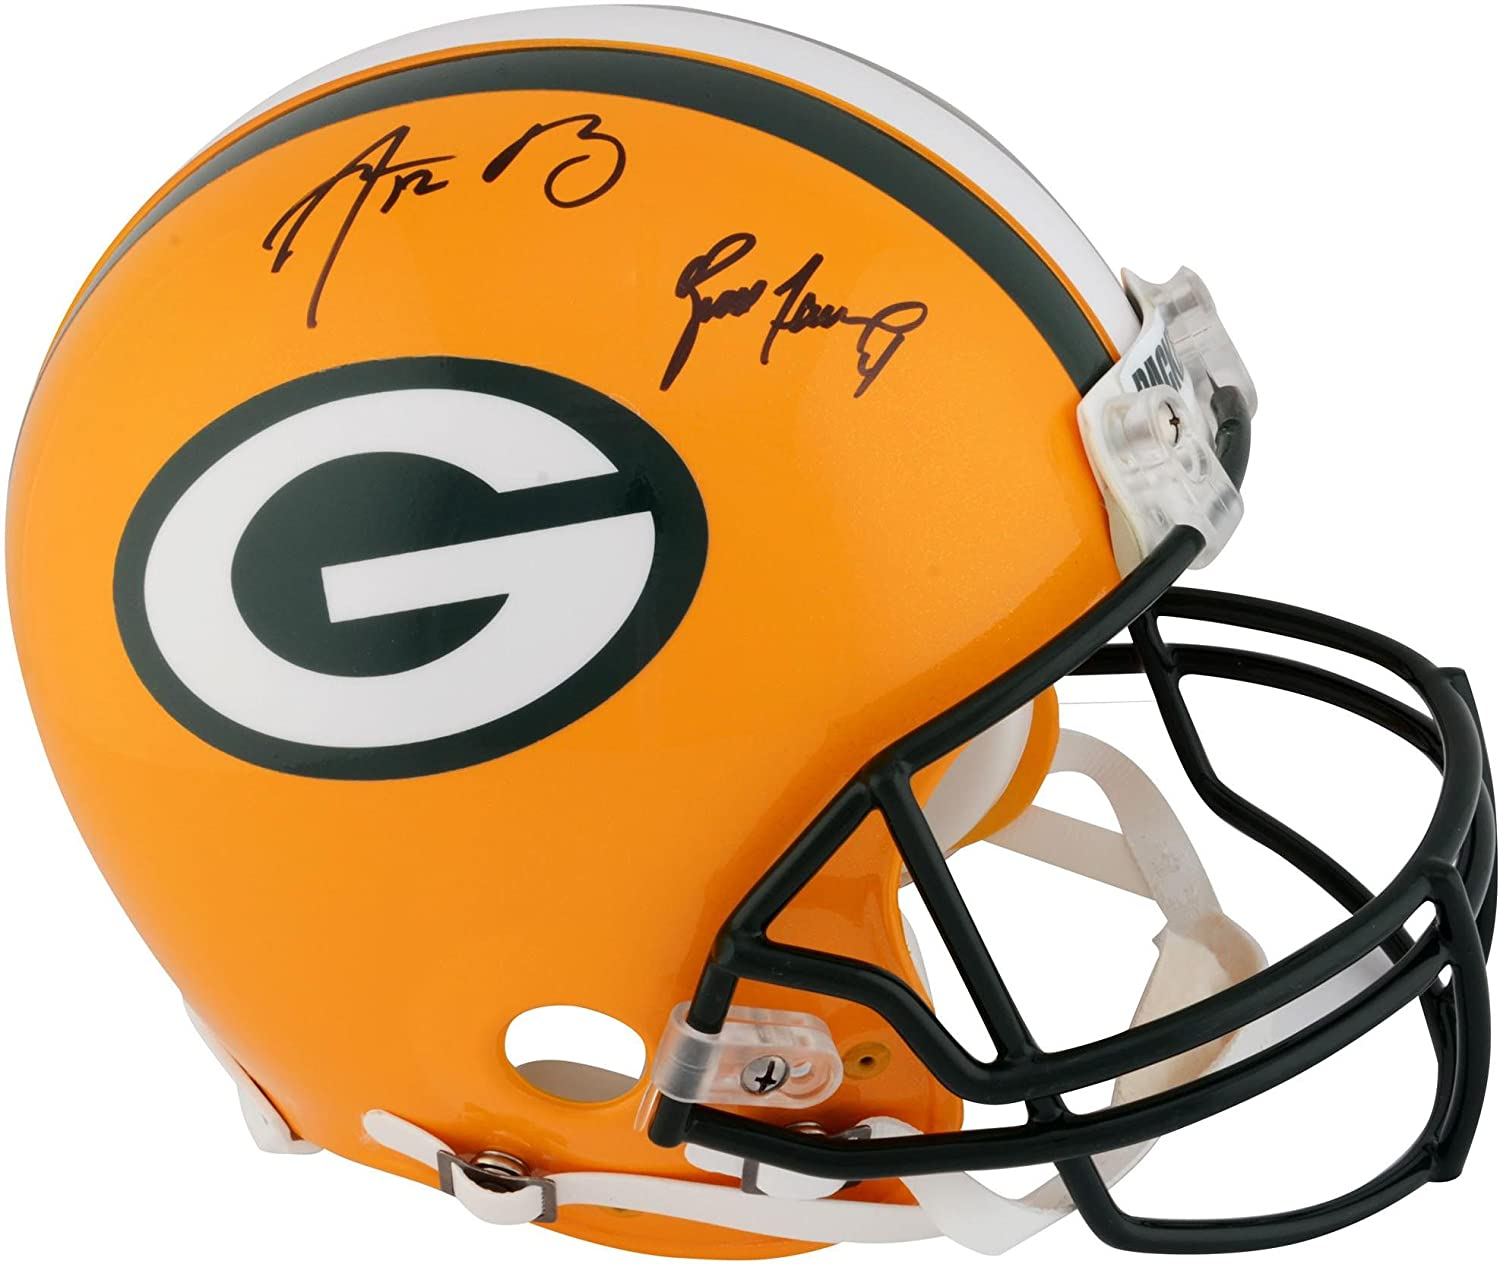 Aaron Rodgers and Brett Favre Green Bay Packers Dual Signed Helmet